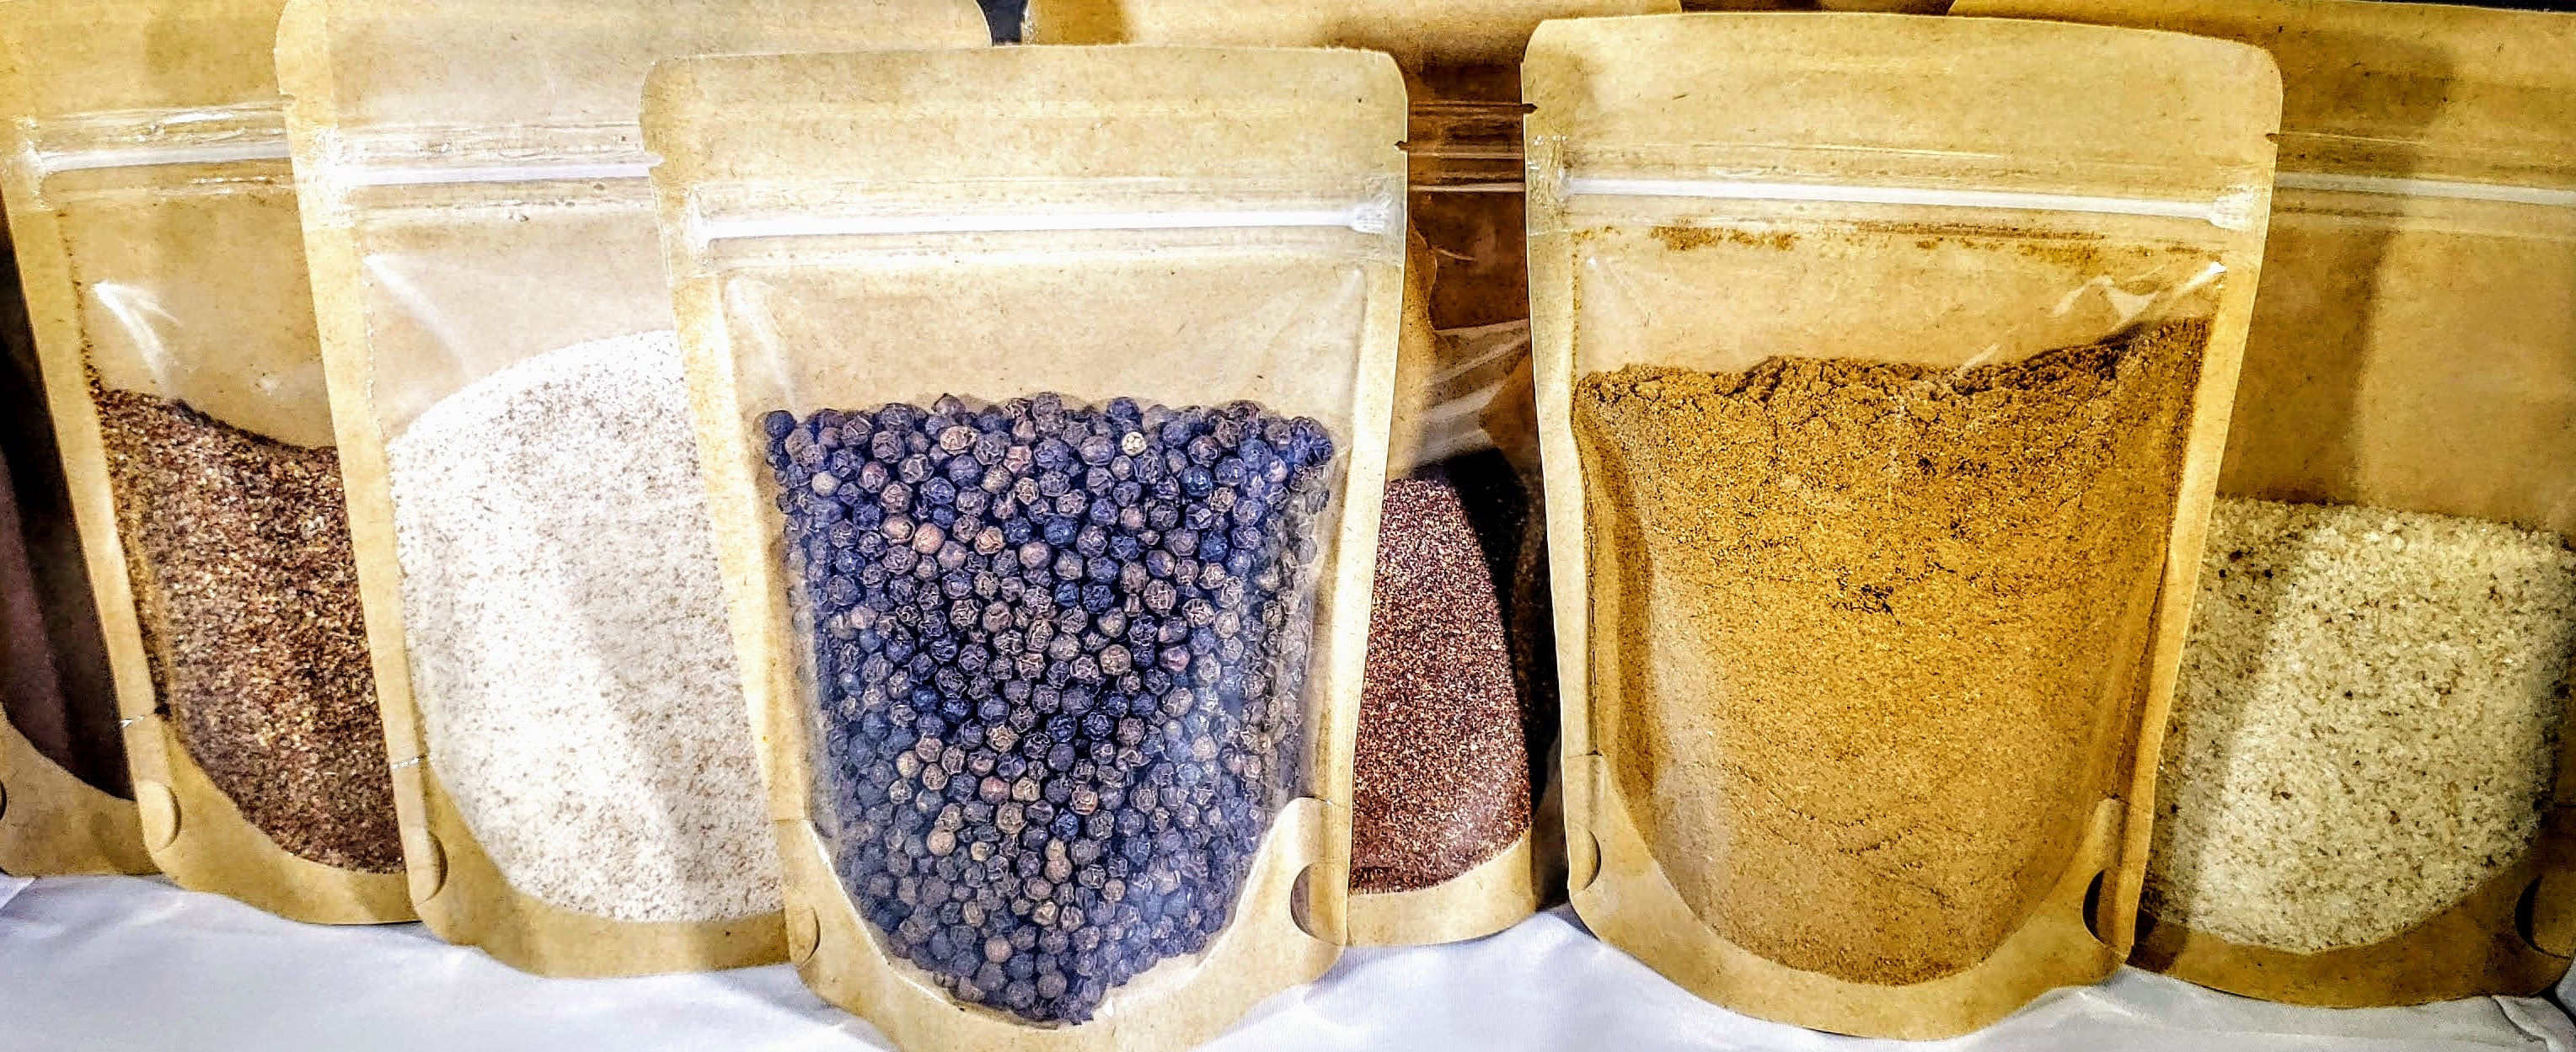 variety of spices to mix your own rub